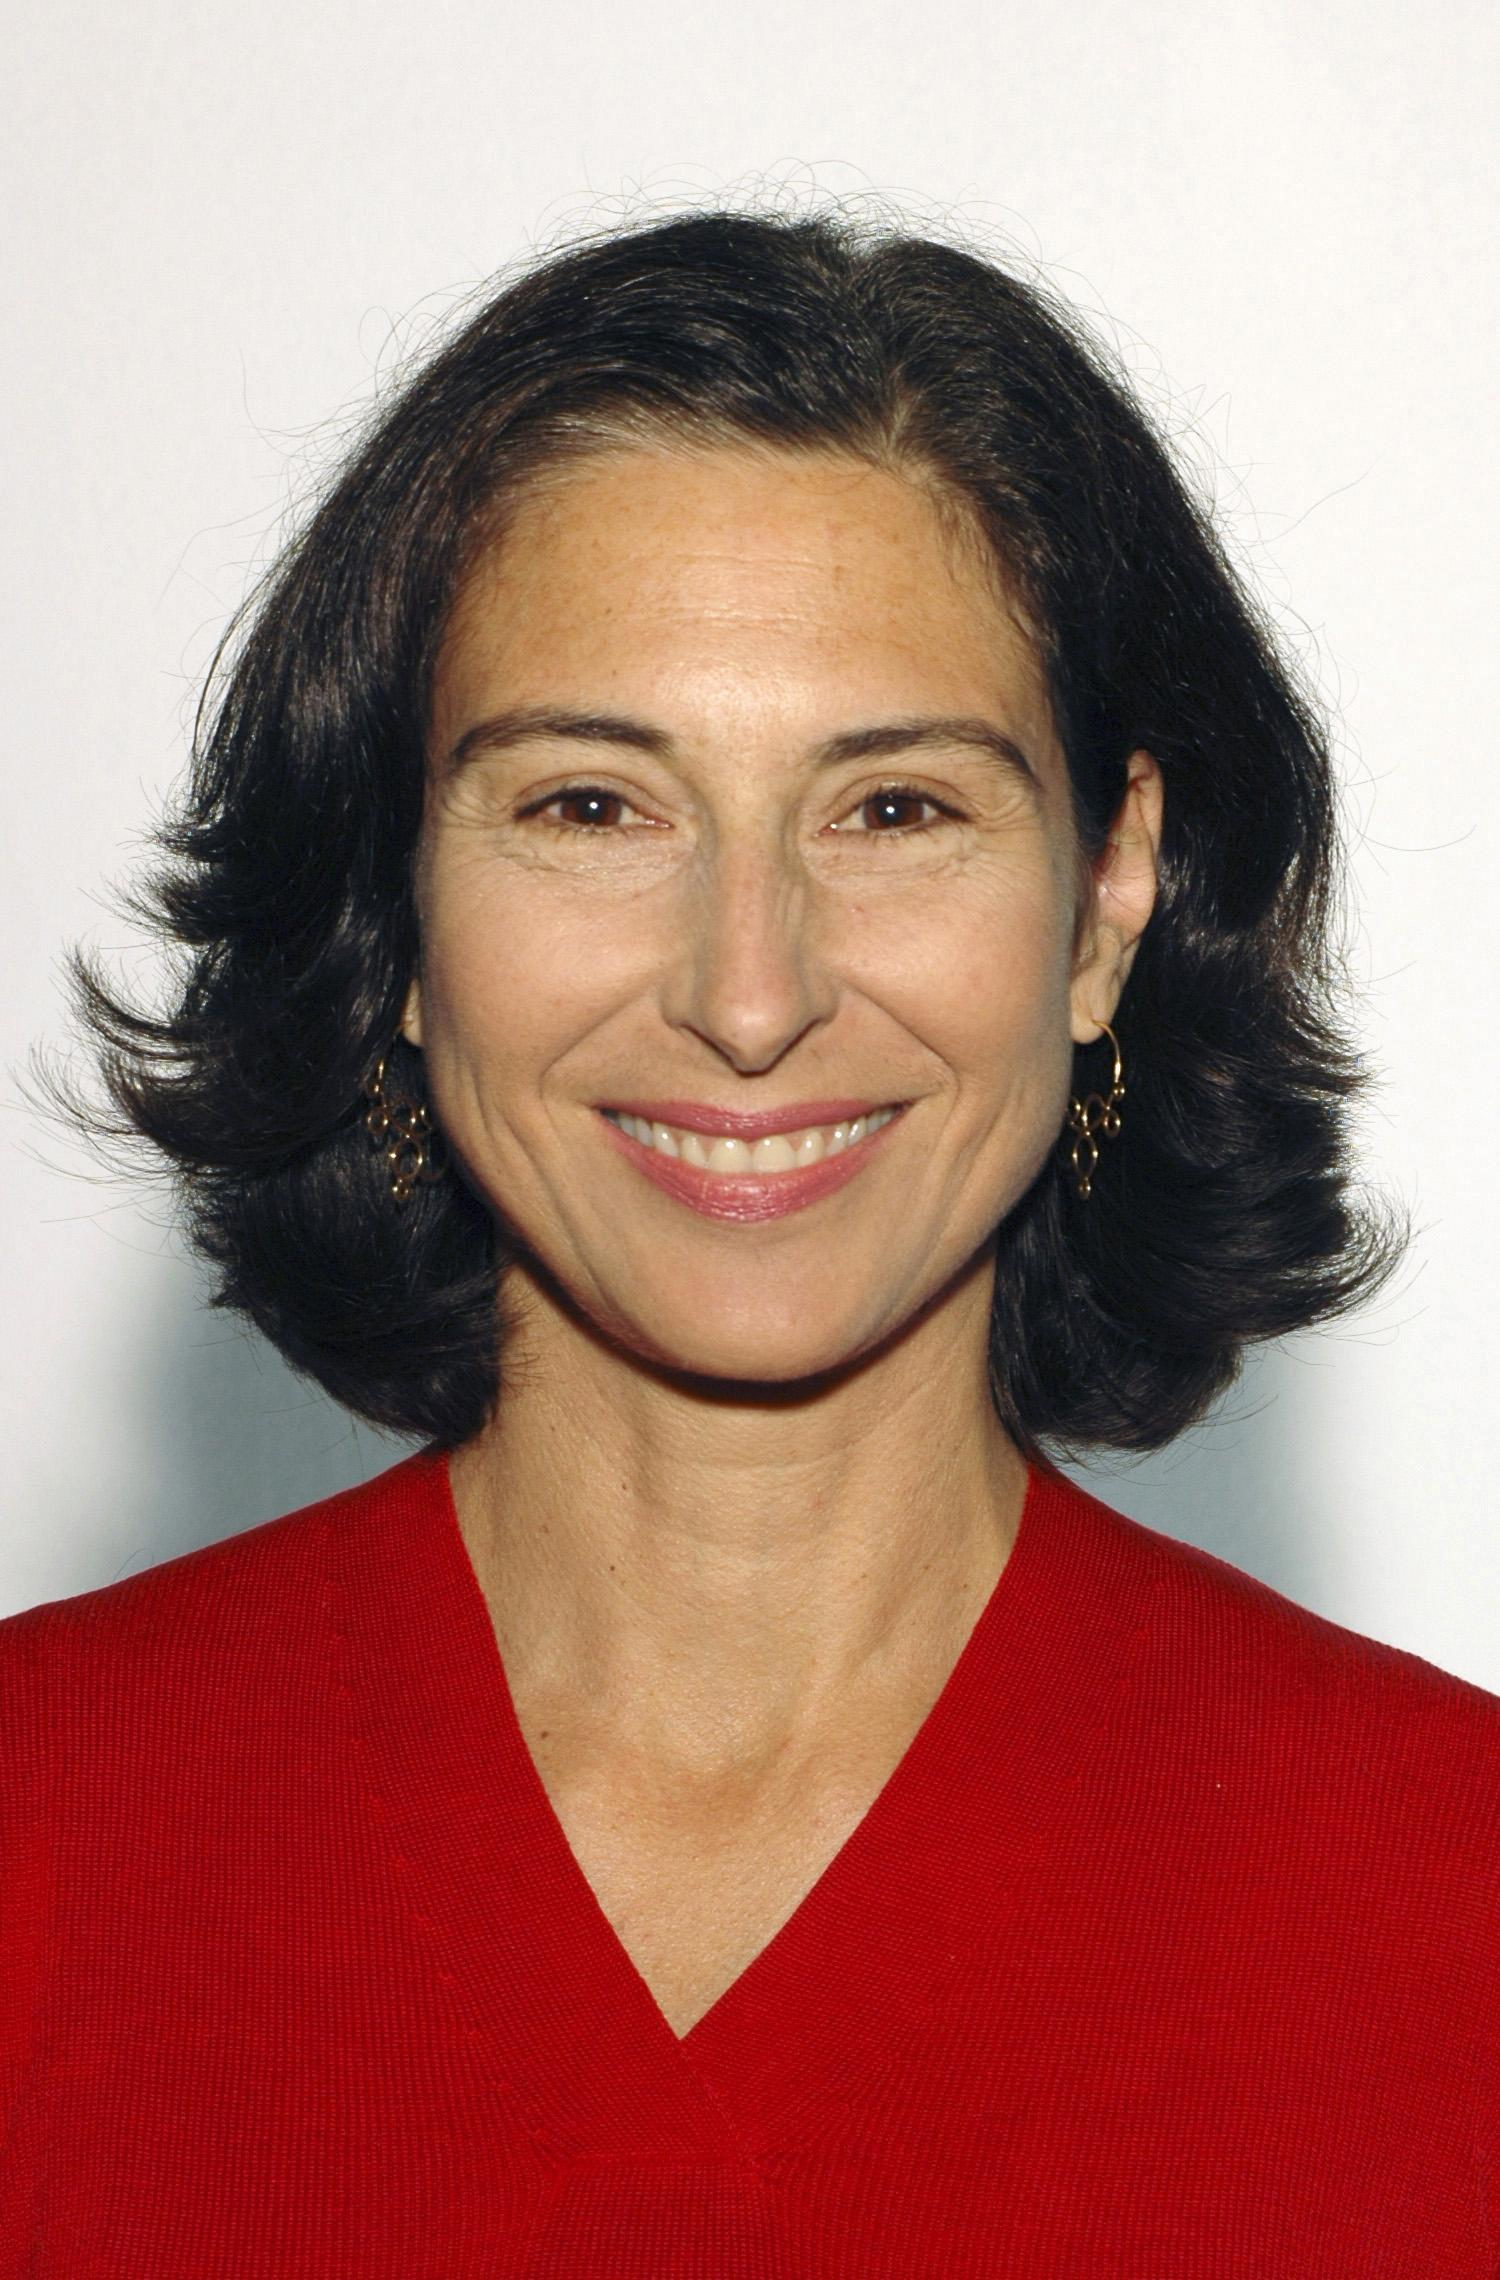 A middle-aged woman with dark shoulder-length hair wearing a red v-neck sweater smiles.